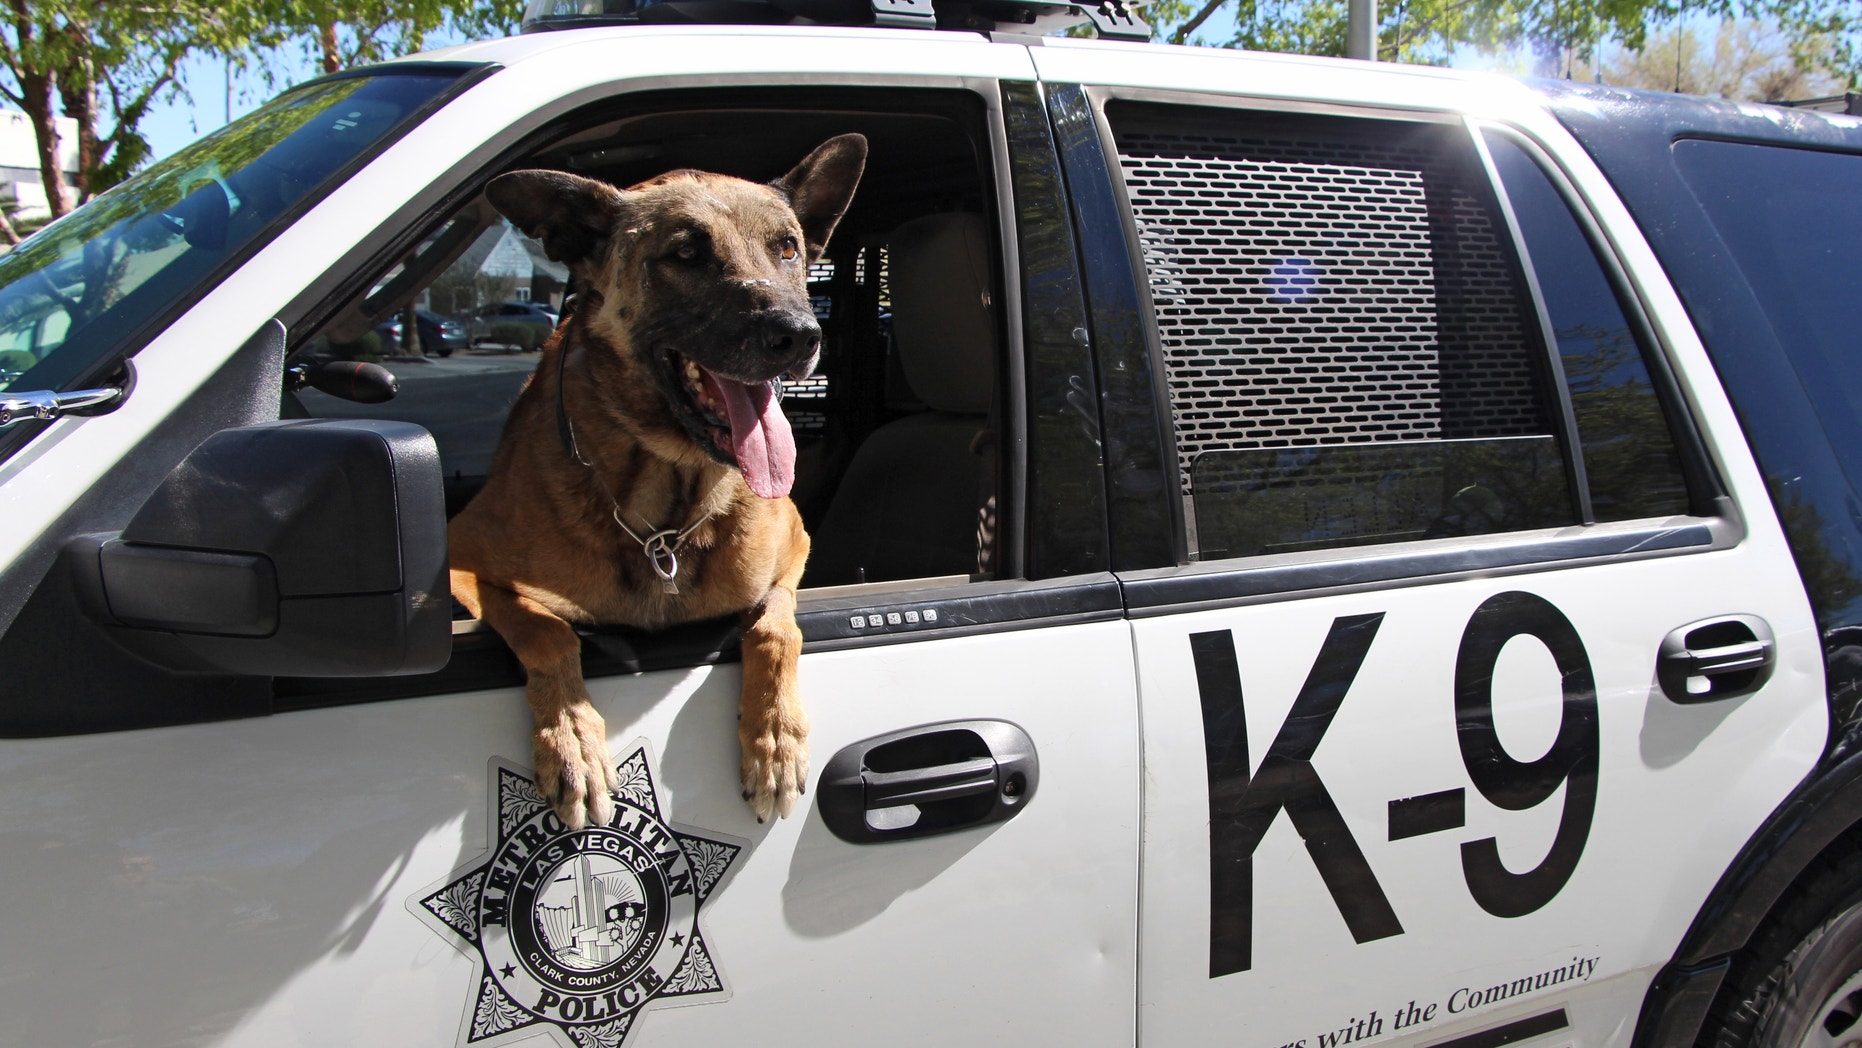 Nicky, the police K-9, in an undated photo.